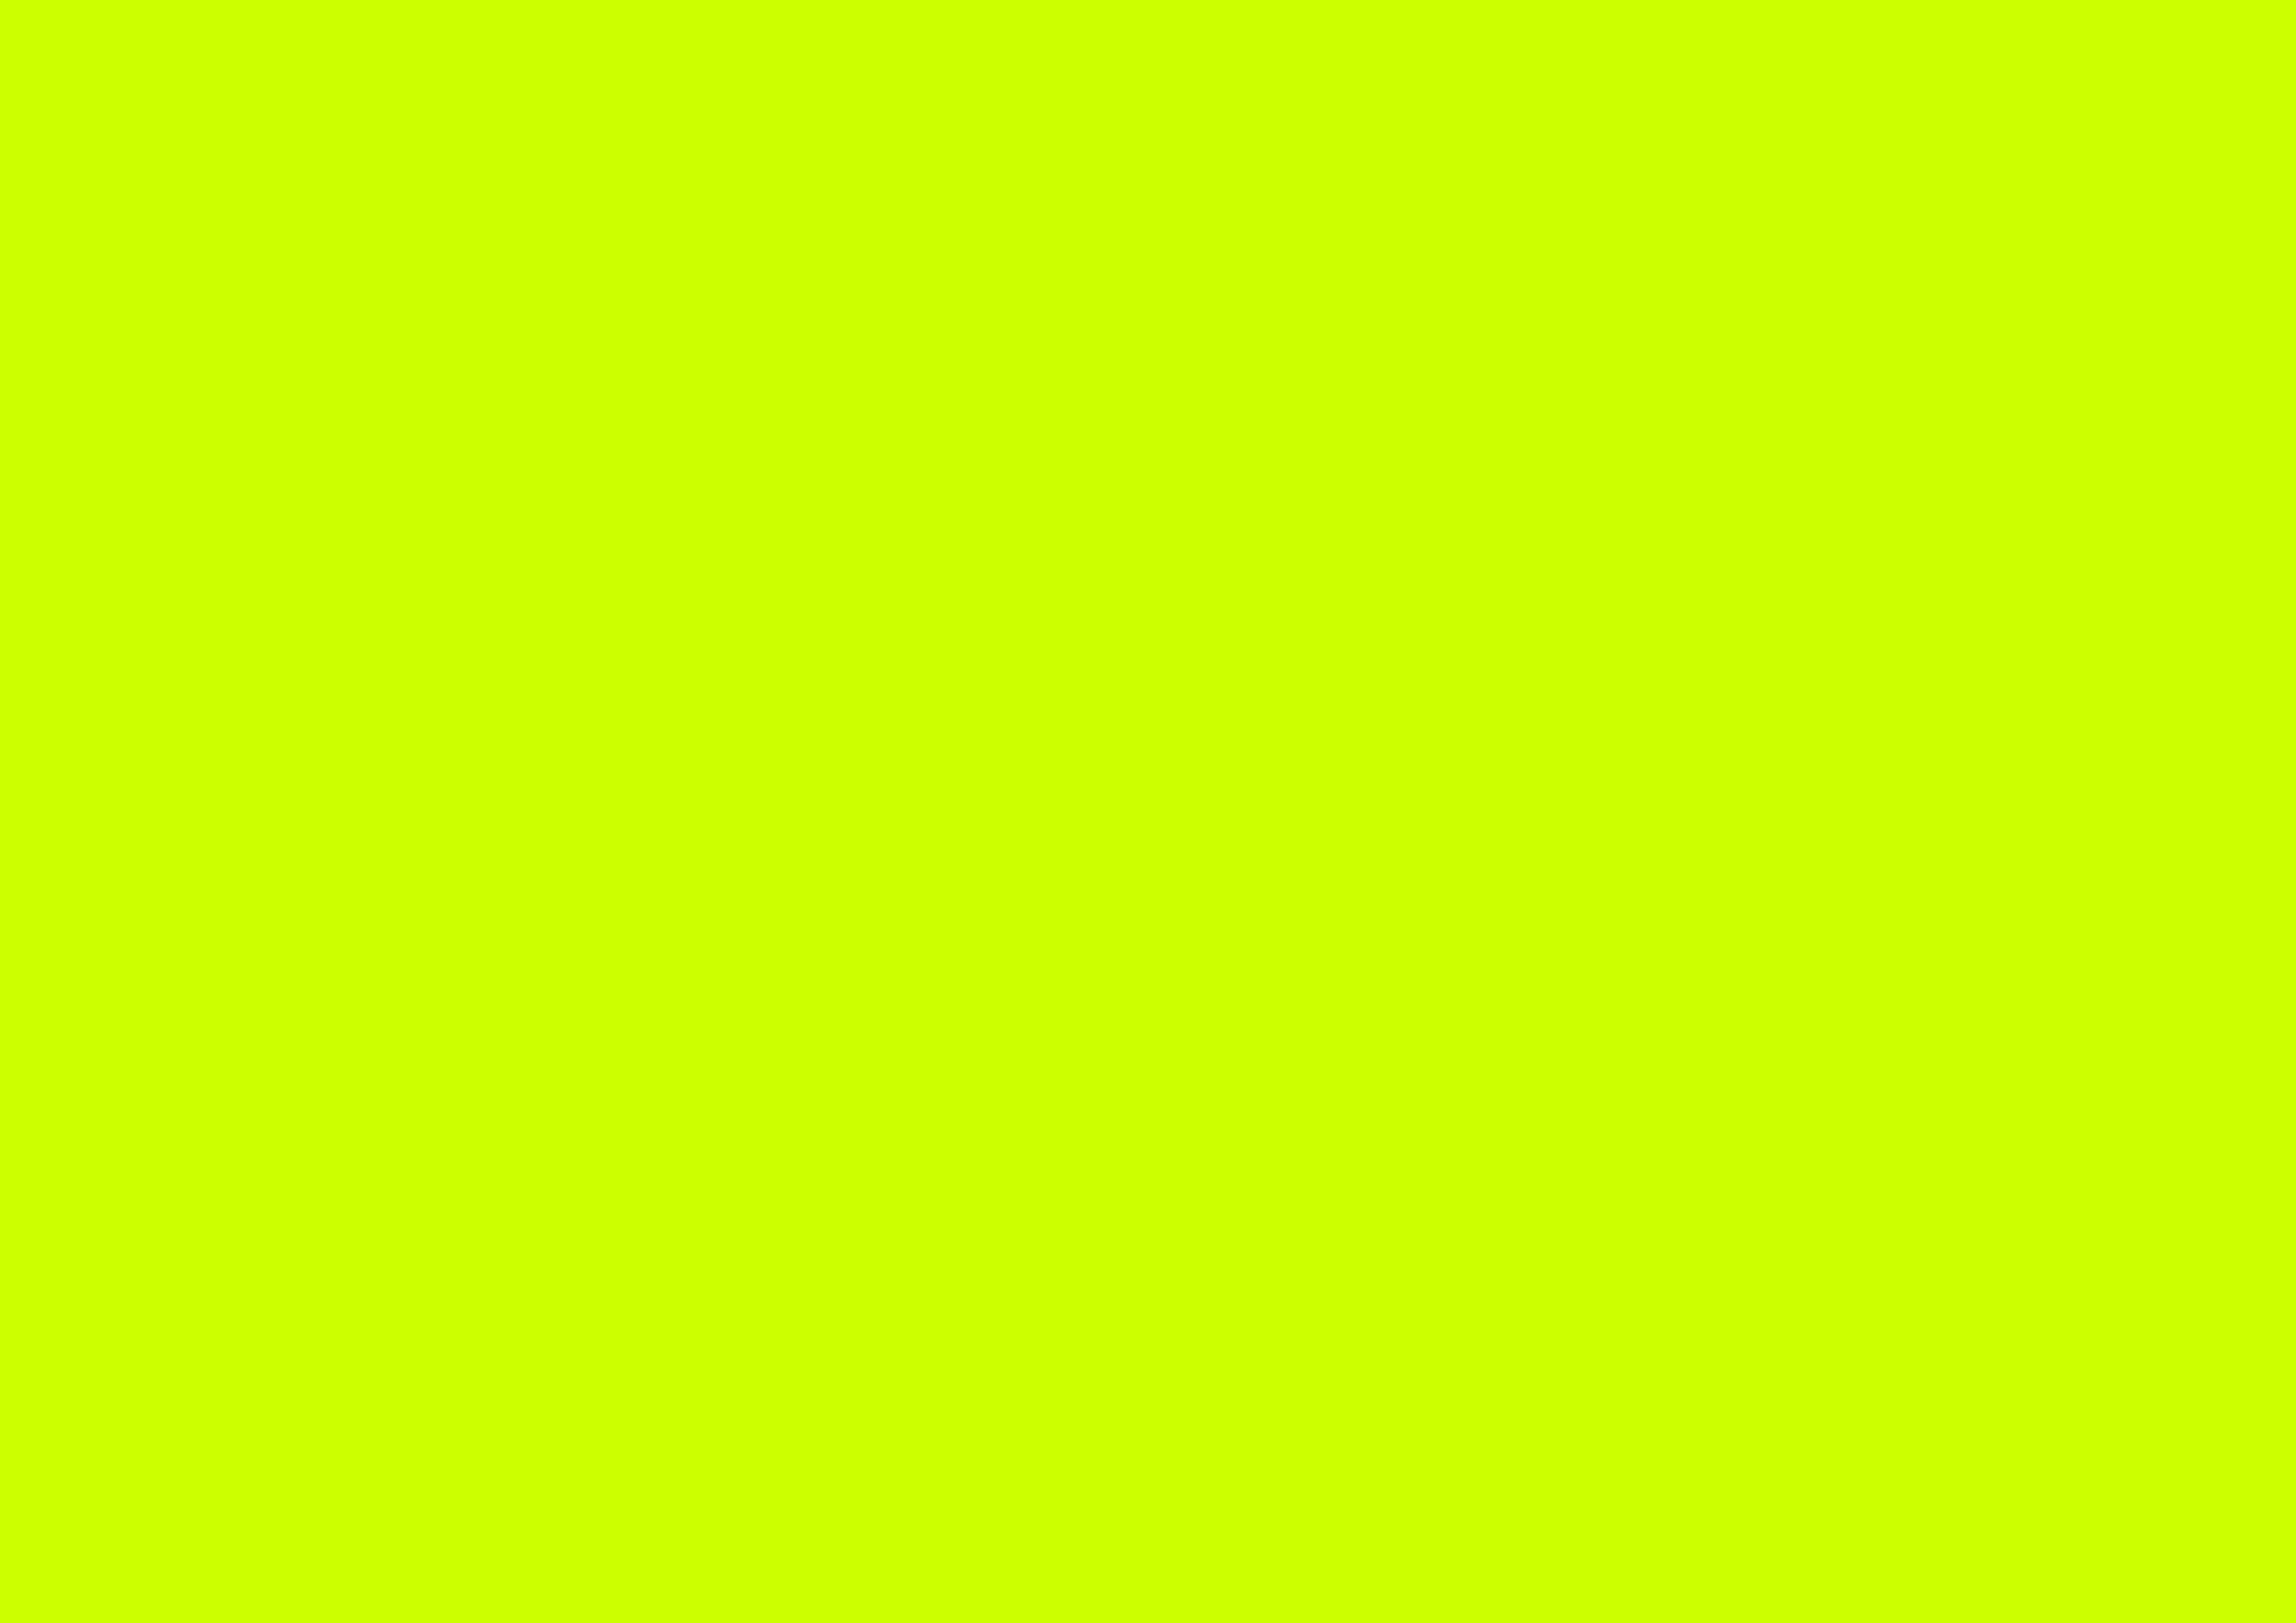 3508x2480 Fluorescent Yellow Solid Color Background